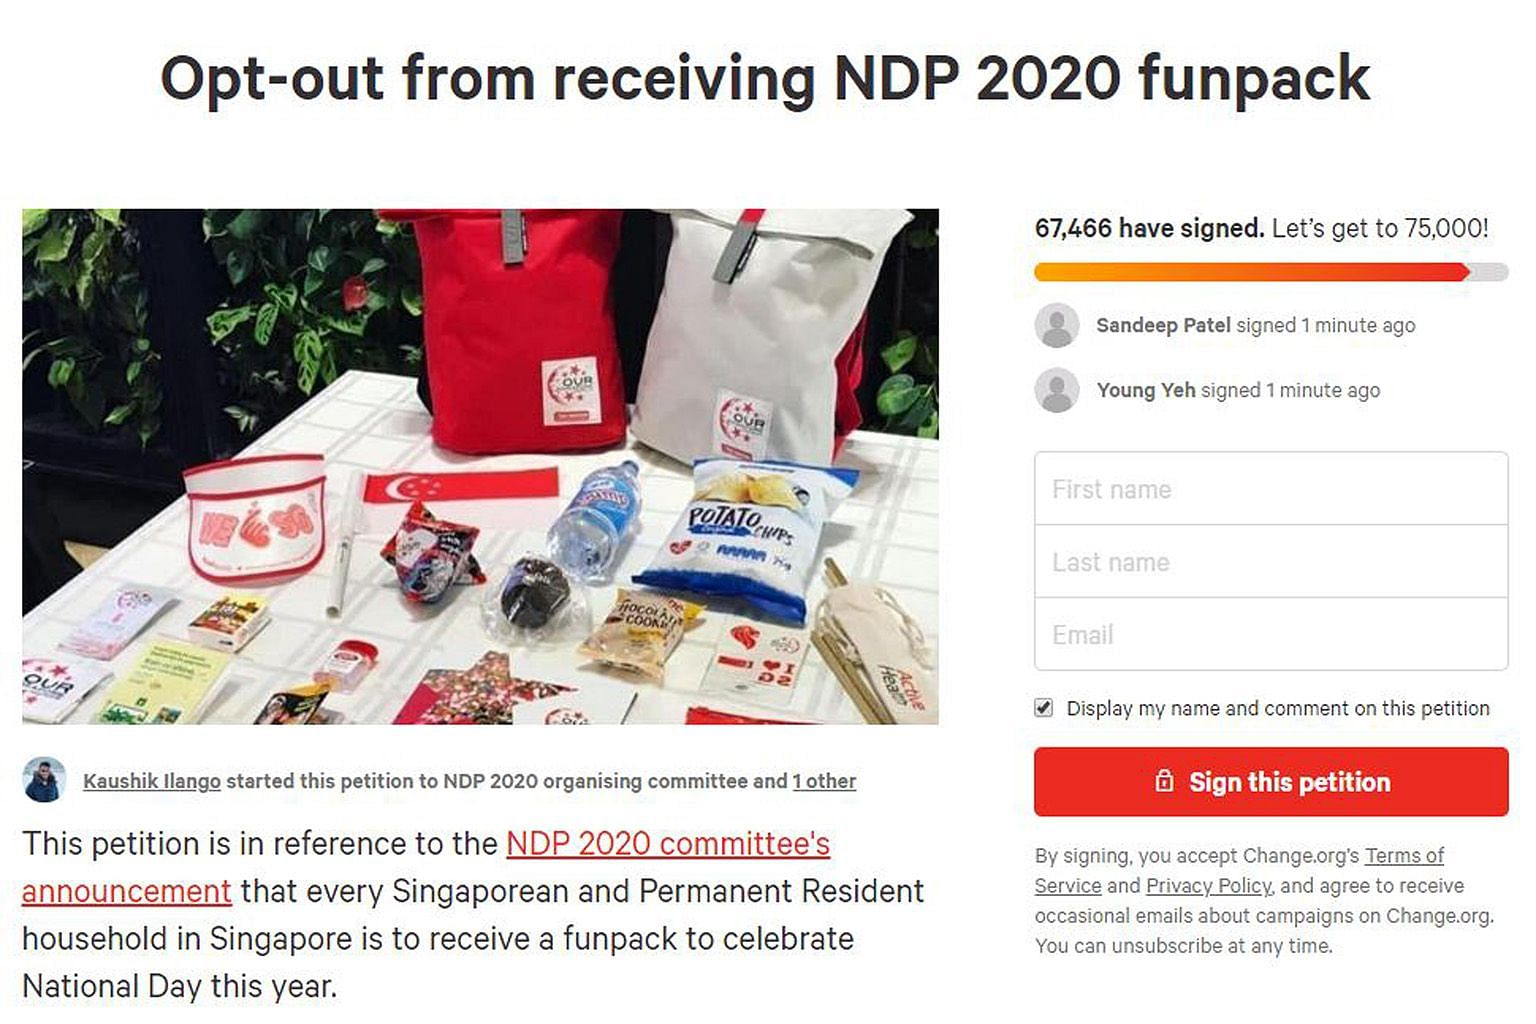 A petition was launched last Thursday to allow people to opt out of receiving the National Day Parade funpack, following the NDP committee's announcement that 1.2 million funpacks will be distributed to all Singaporean and permanent resident househol